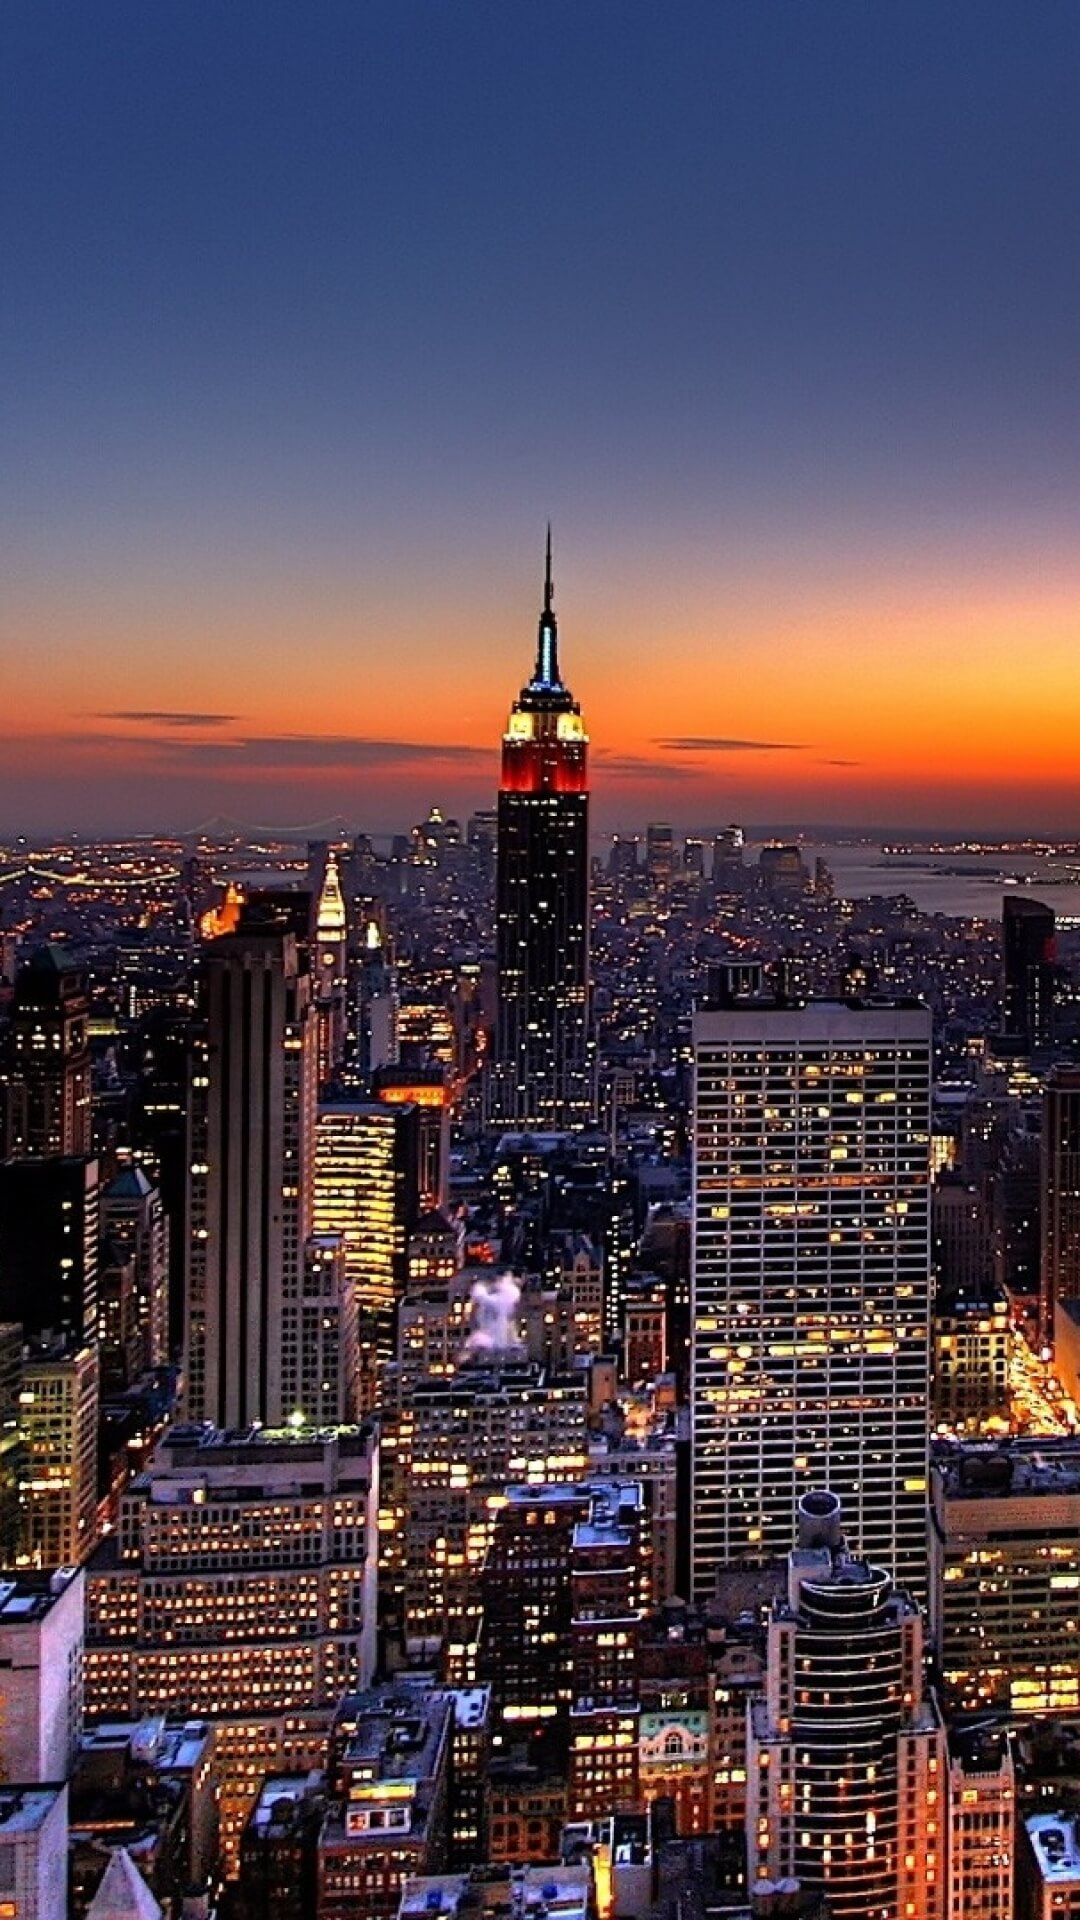 Iphone 7 Wallpaperhd Tumblr 168 New York Wallpaper